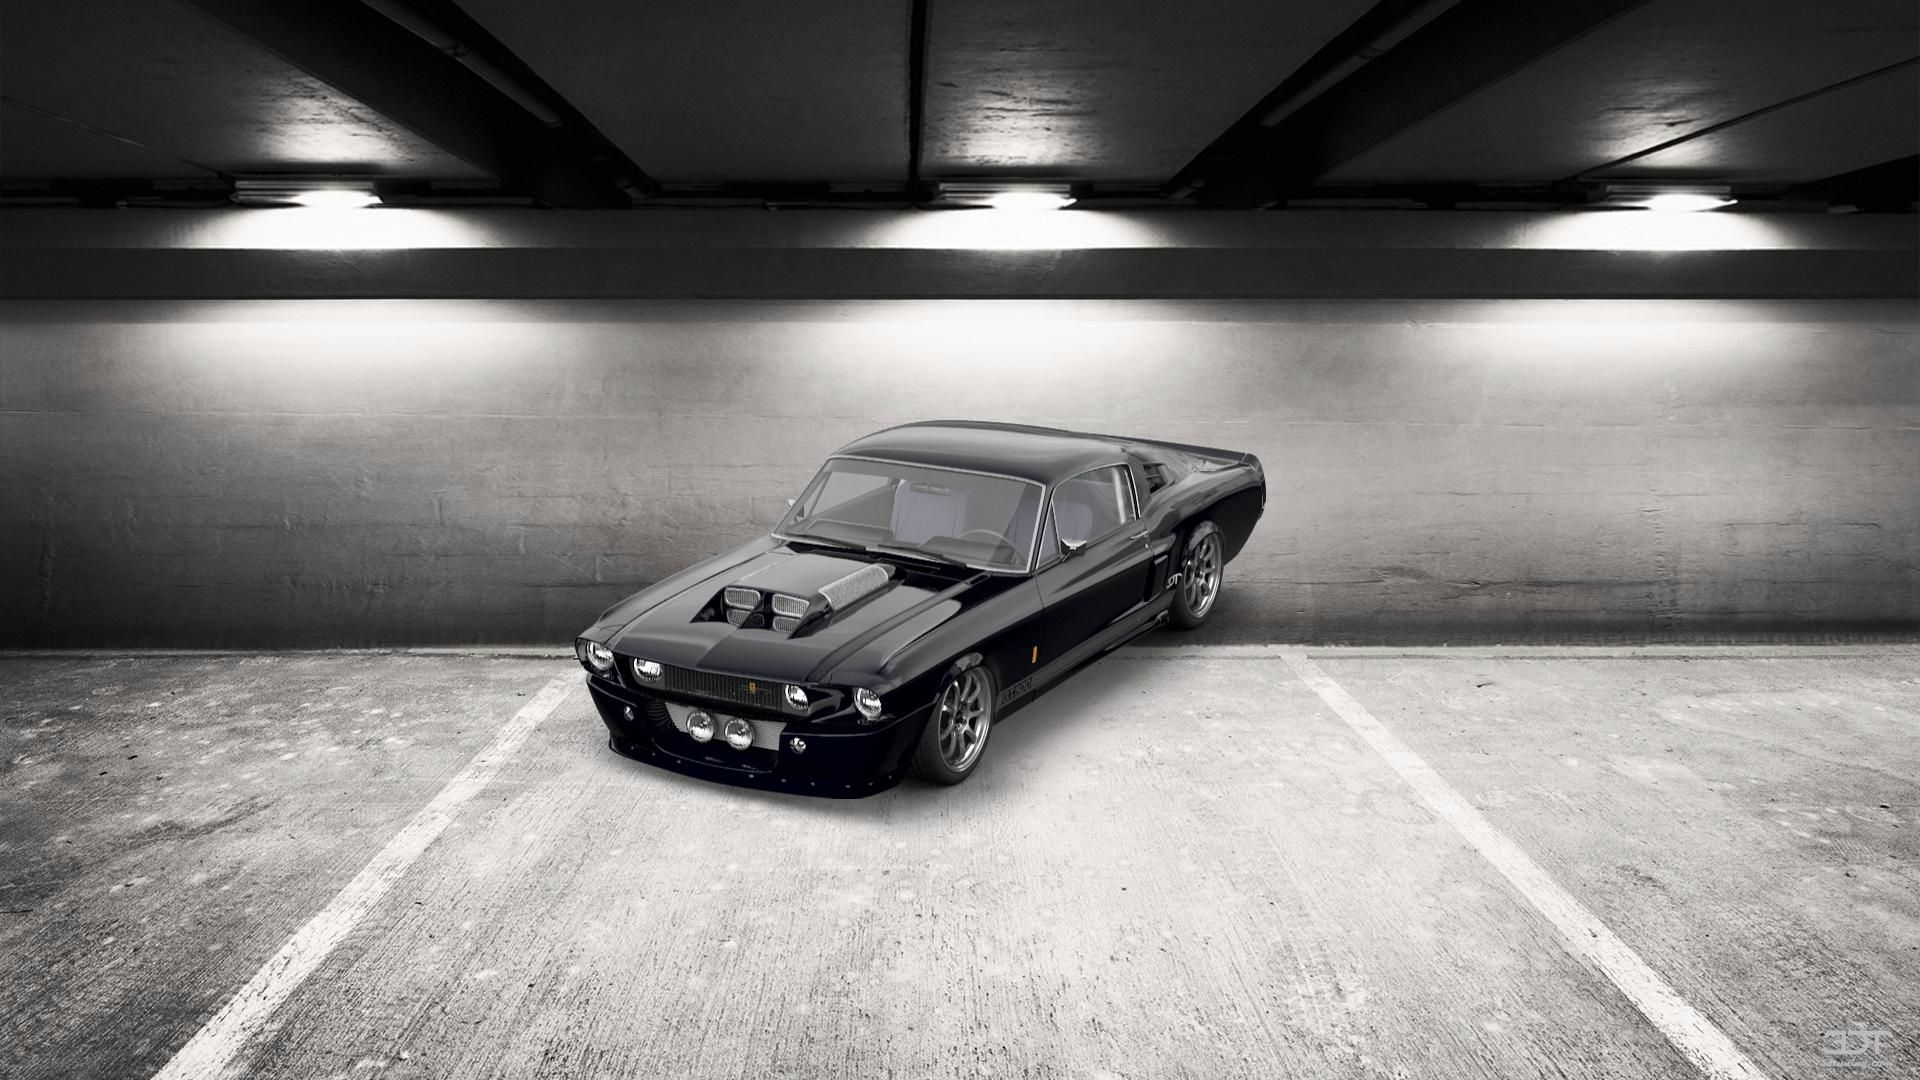 3dtuning edition pro car configuration redefined indiegogo gaming pinterest cars and projects